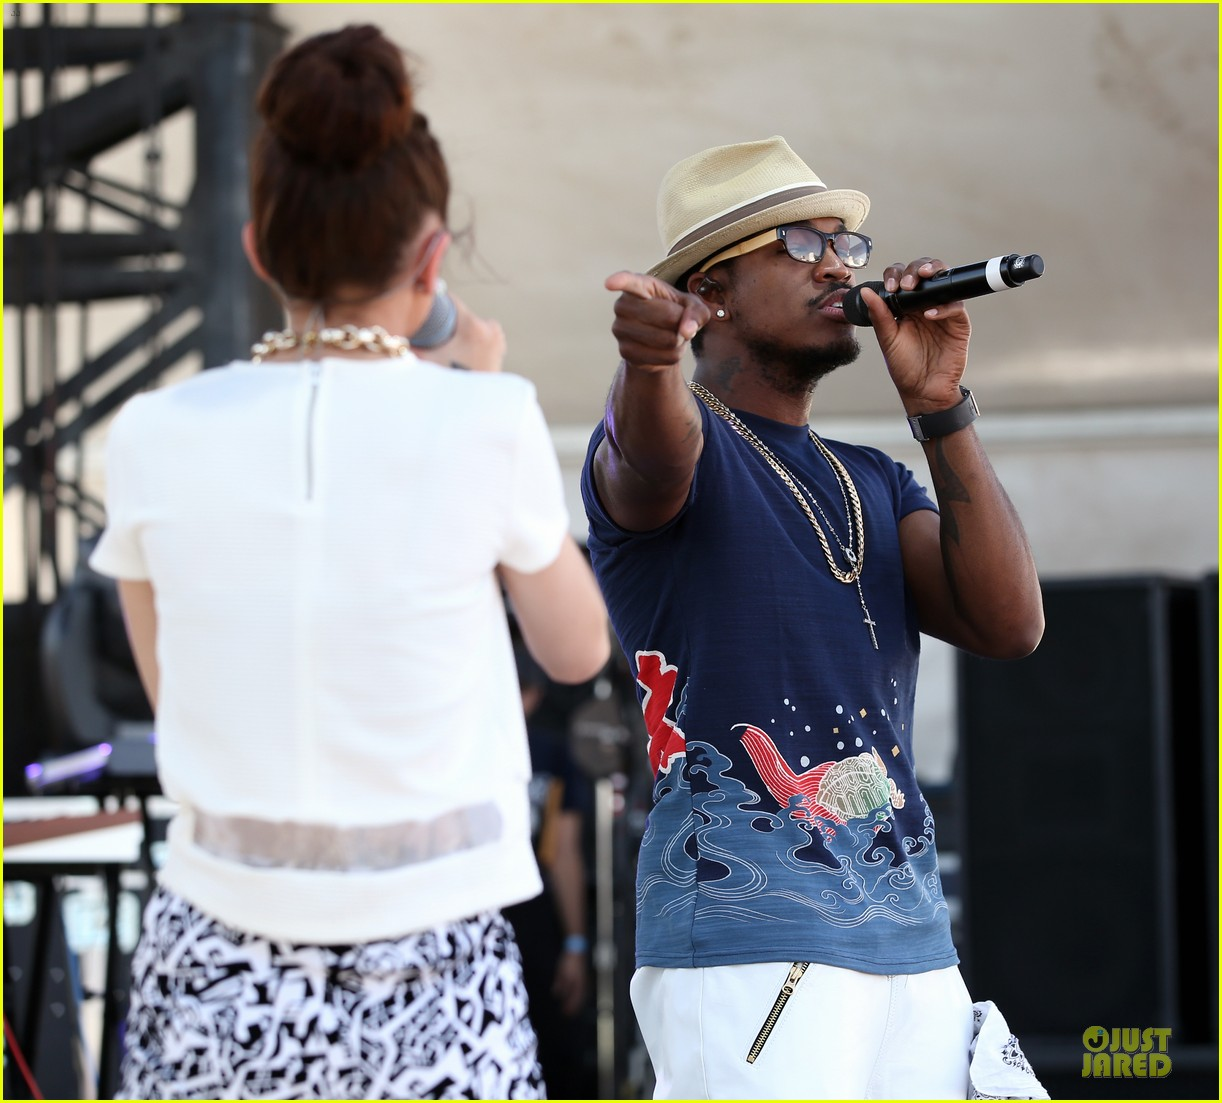 shirtless jason derulo cher lloyd iheartradio fest village performers 08